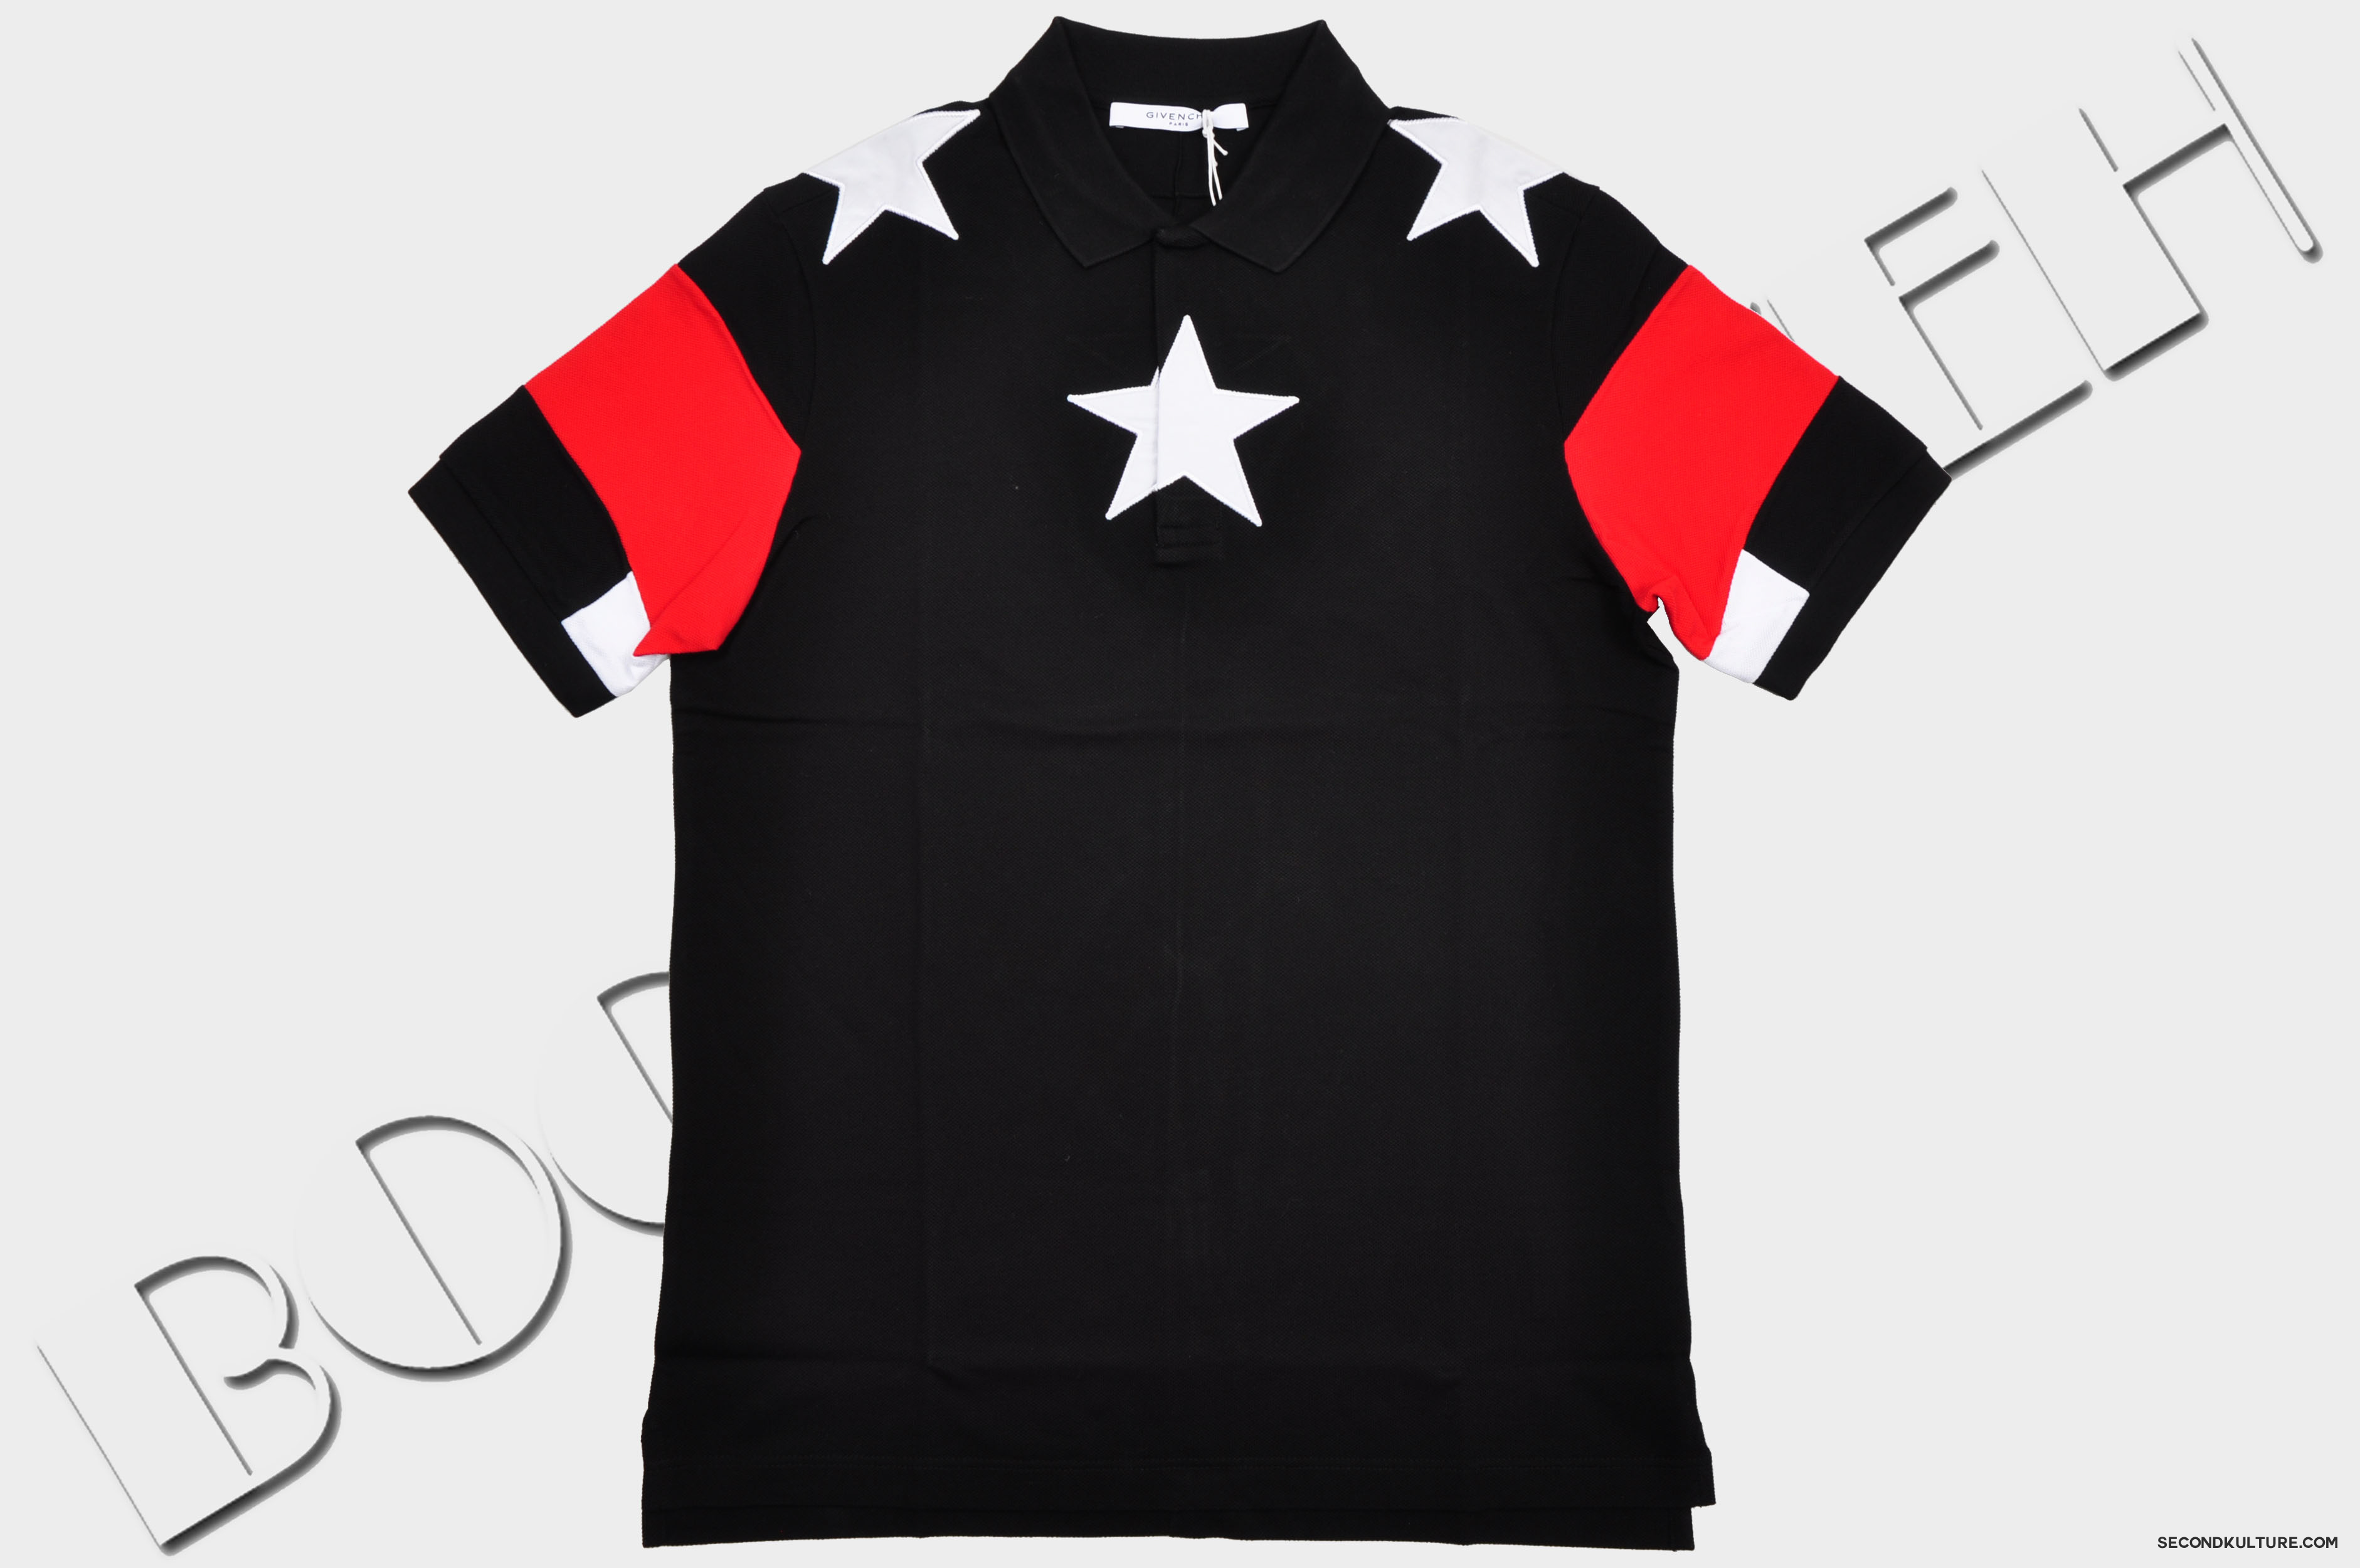 Givenchy-Black-Stars-Red-Banded-Sleeves-Polo-Shirt-Pre-Fall-2015-15F7600511